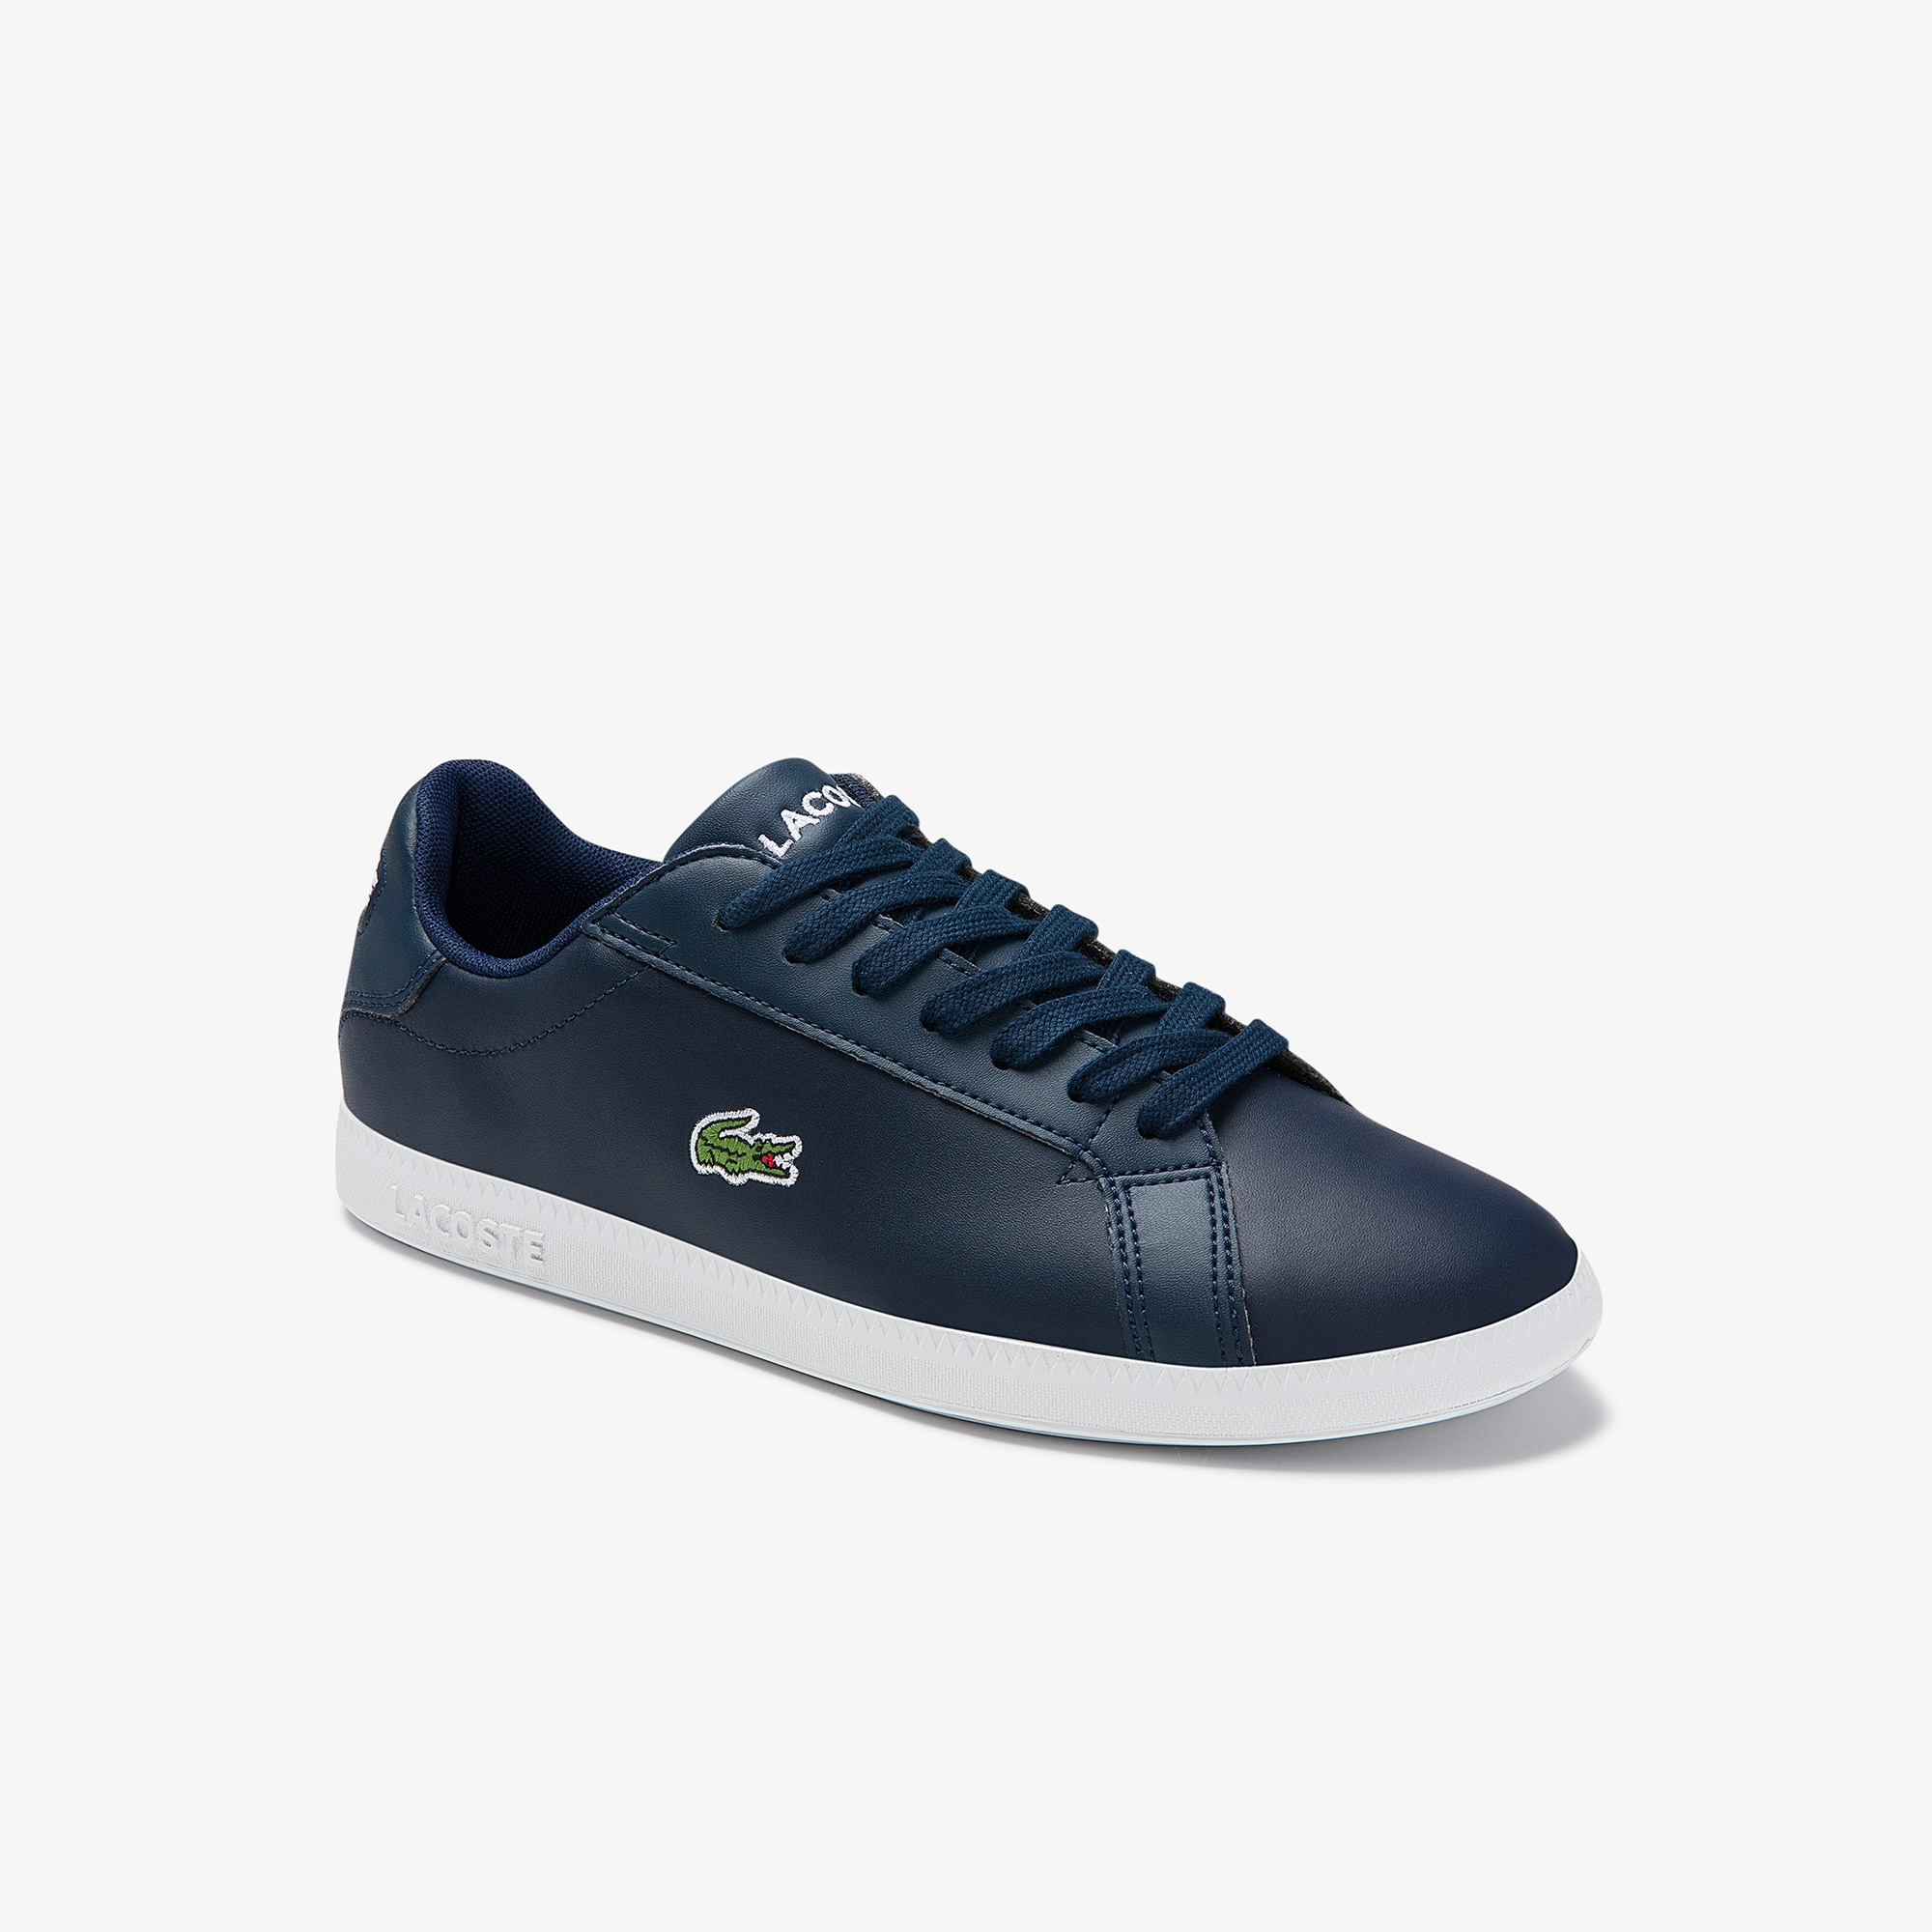 los angeles classic shoes new list Men's Graduate Leather and Synthetic Sneakers | LACOSTE